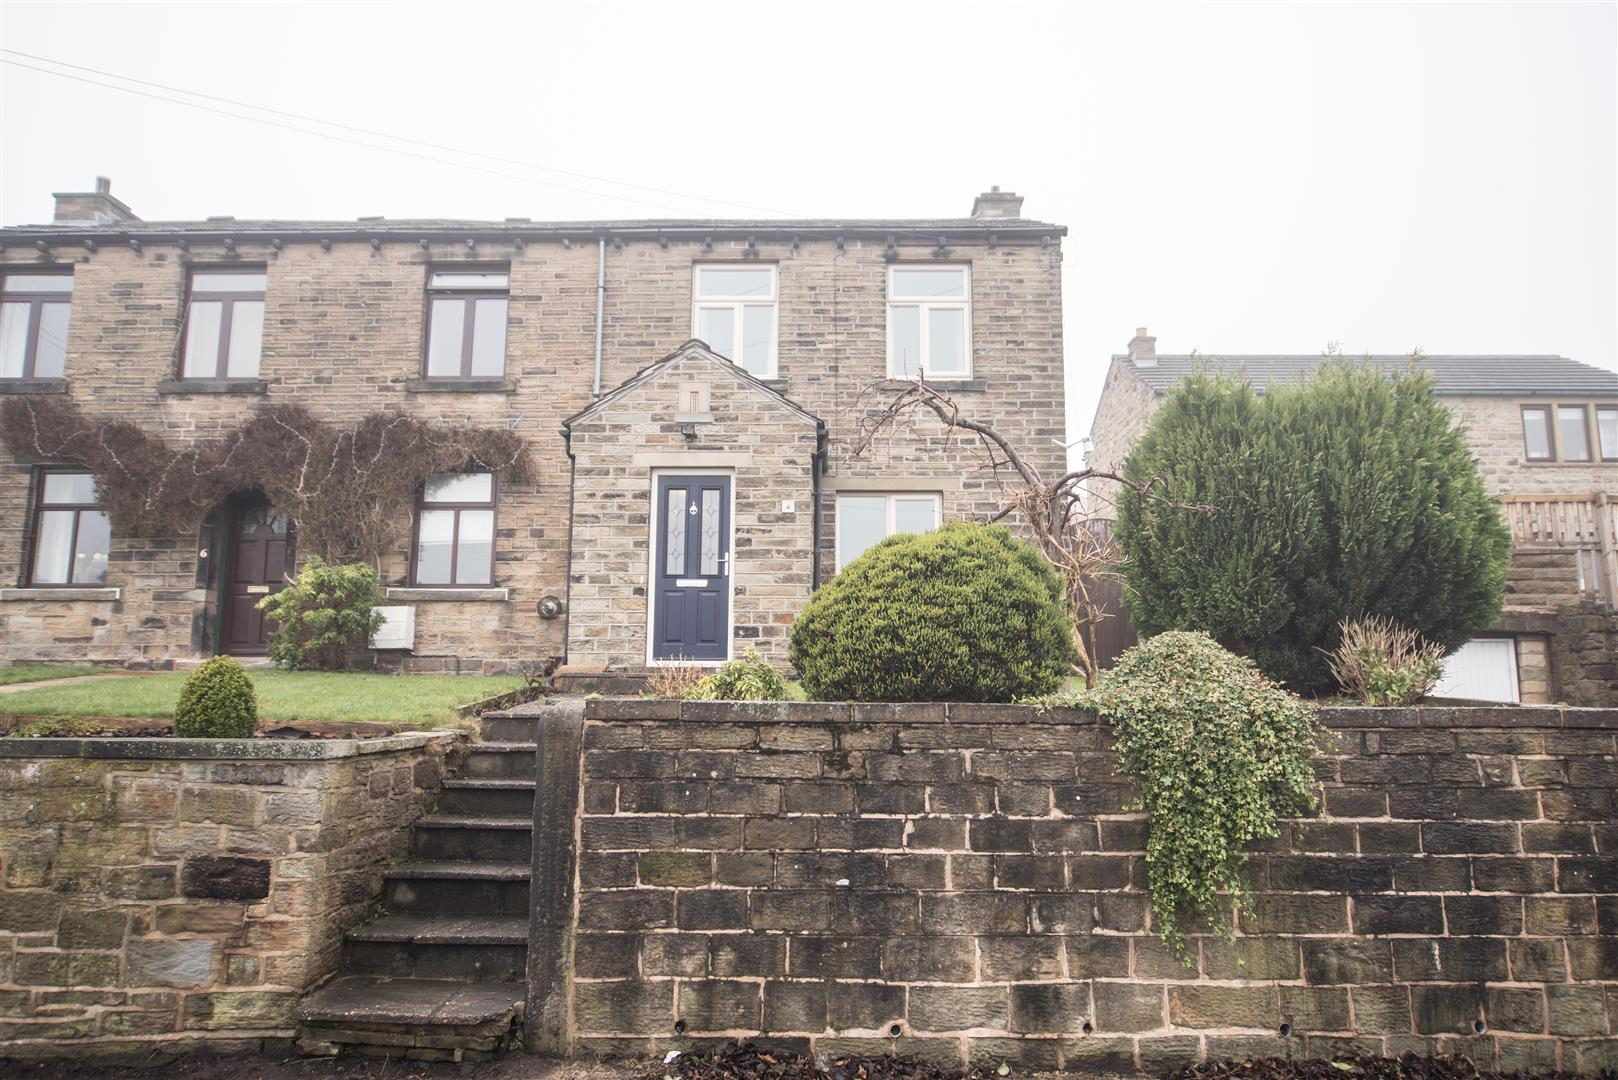 Paisley Property For Sale Denby Dale